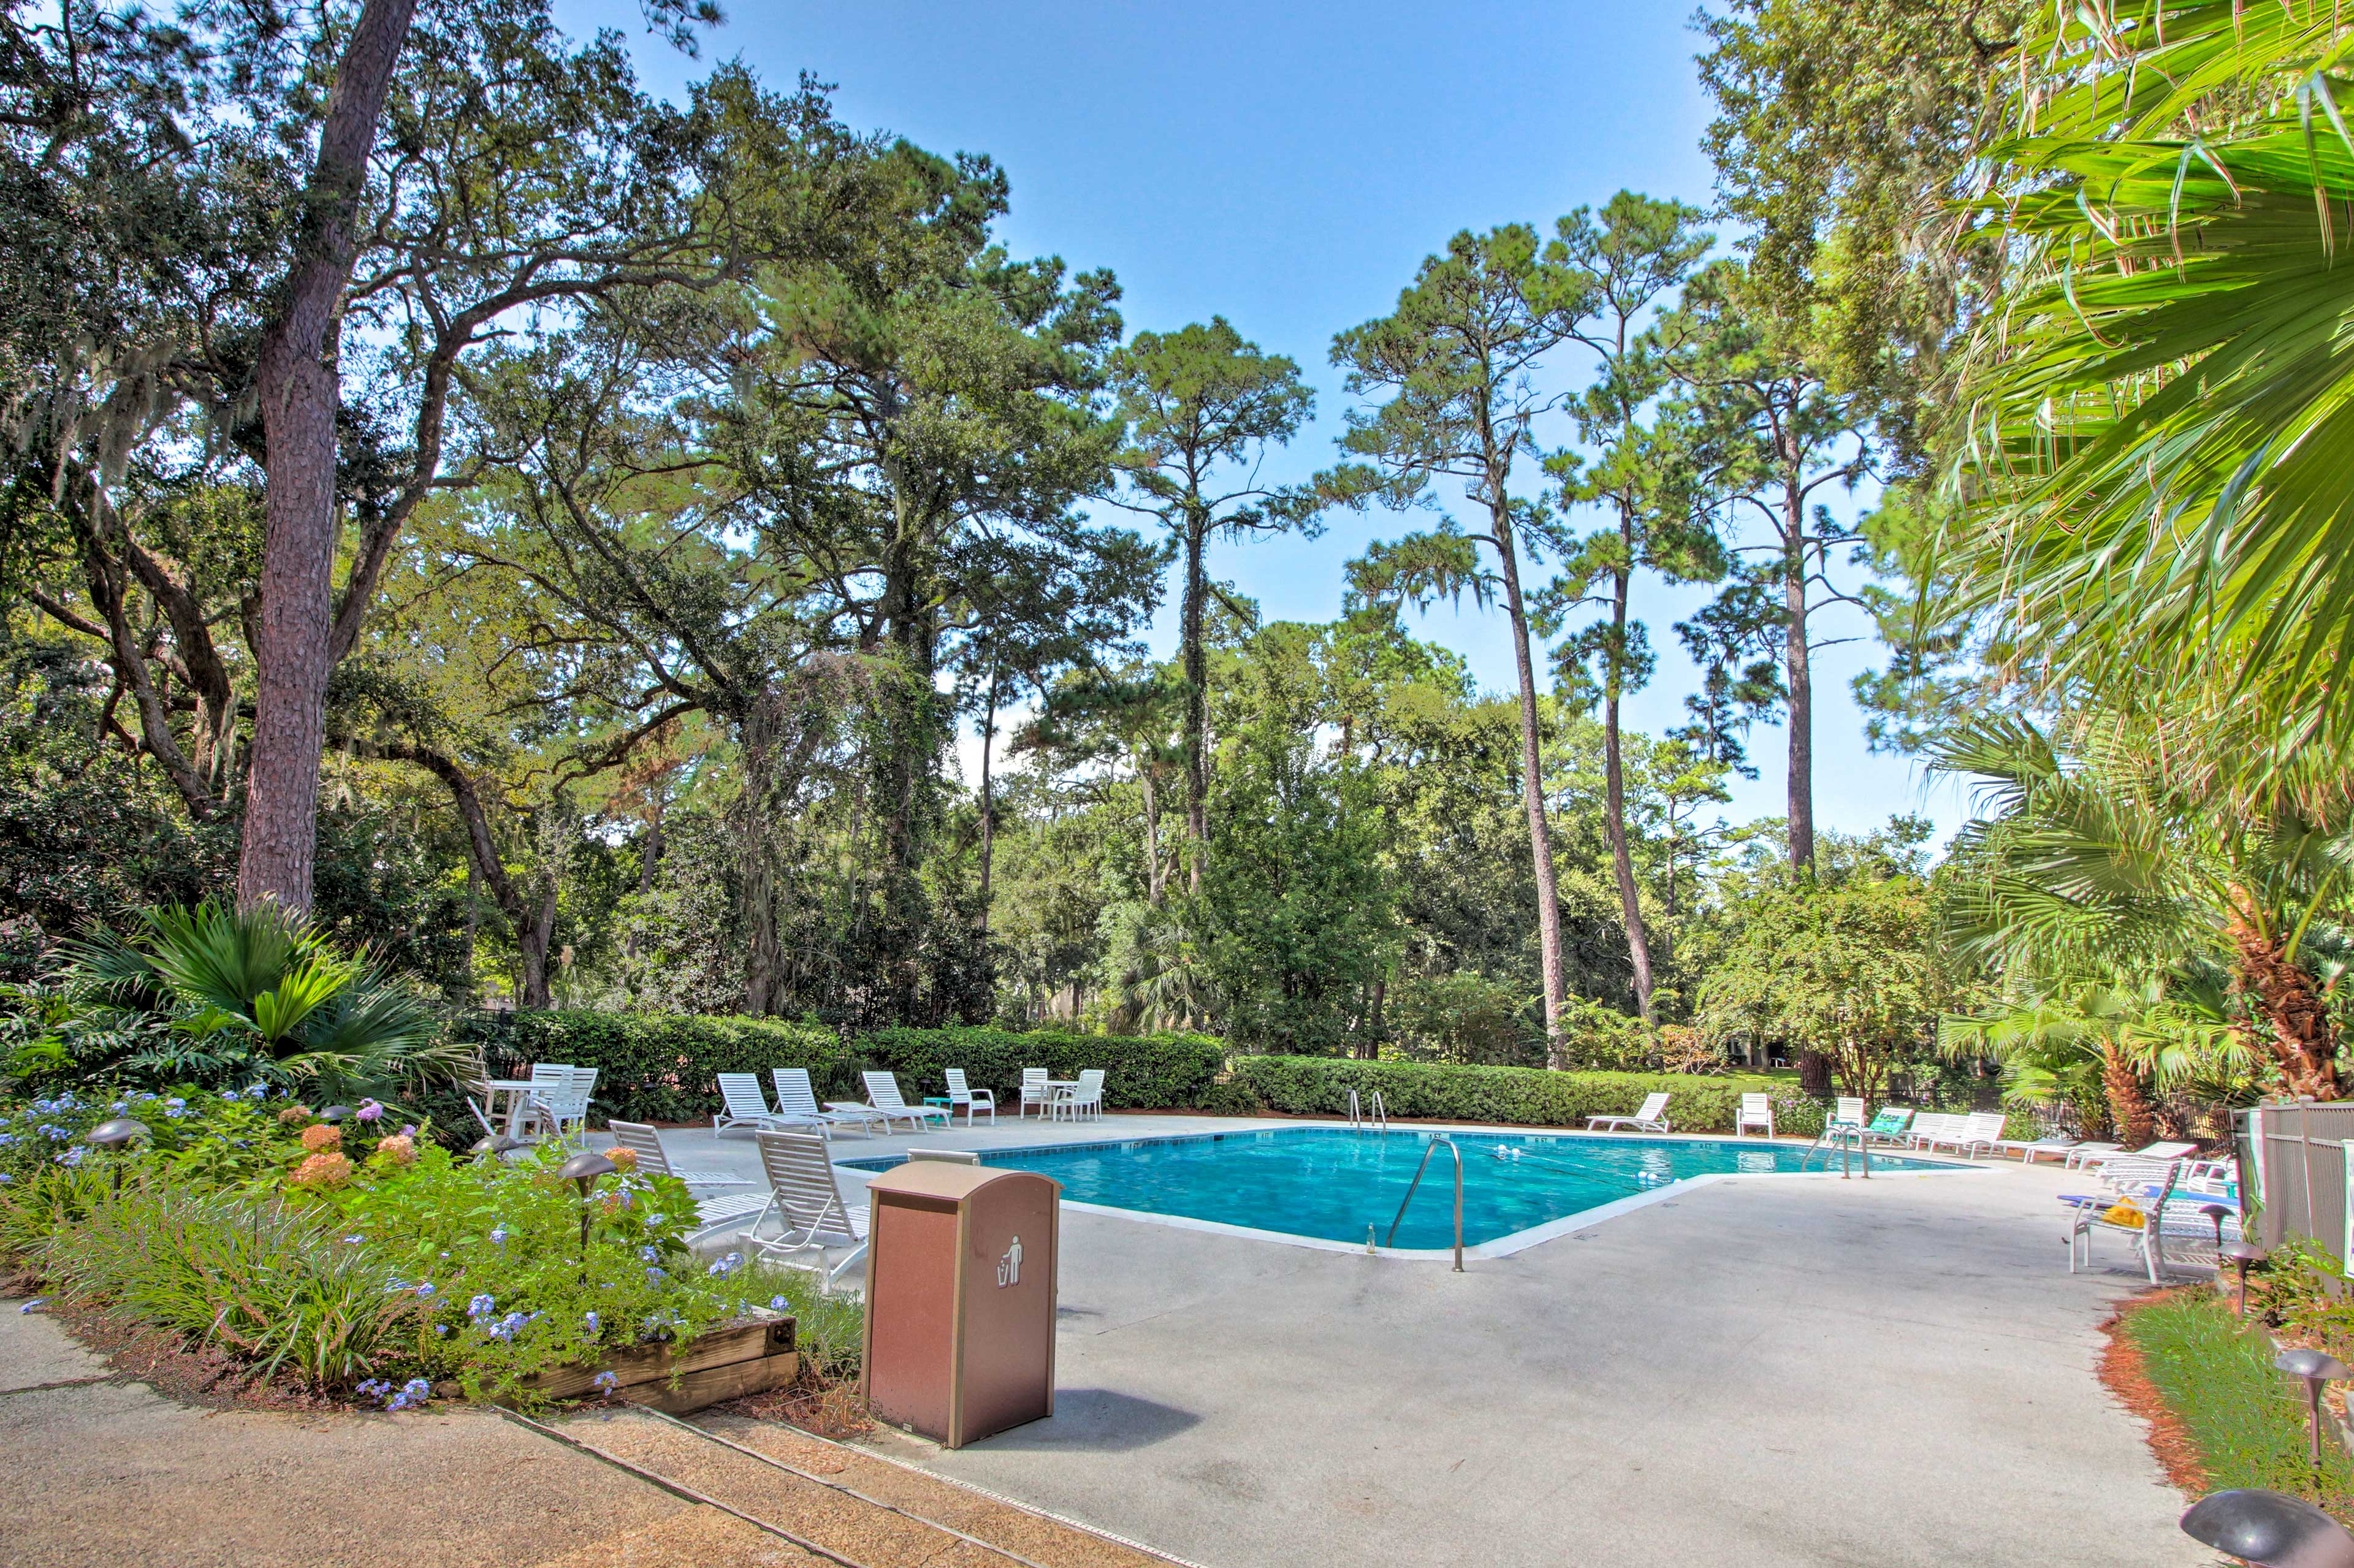 Take a dip or soak up the sun by the community pool.